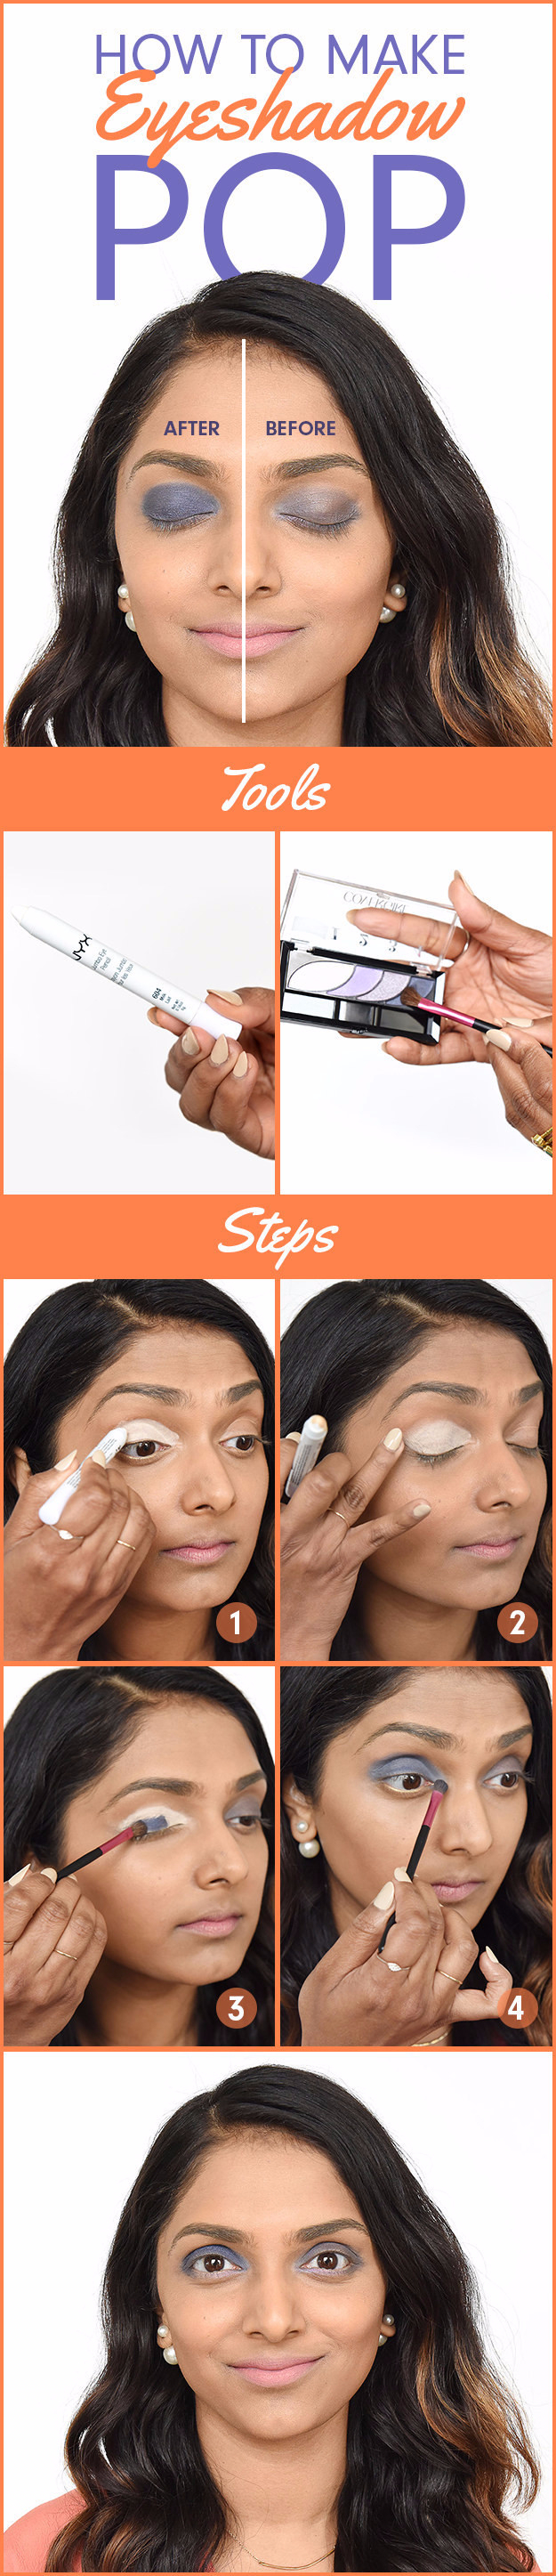 Cool DIY Makeup Hacks for Quick and Easy Beauty Ideas - Make Your Eyeshadow Pop - How To Fix Broken Makeup, Tips and Tricks for Mascara and Eye Liner, Lipstick and Foundation Tutorials - Fast Do It Yourself Beauty Projects for Women